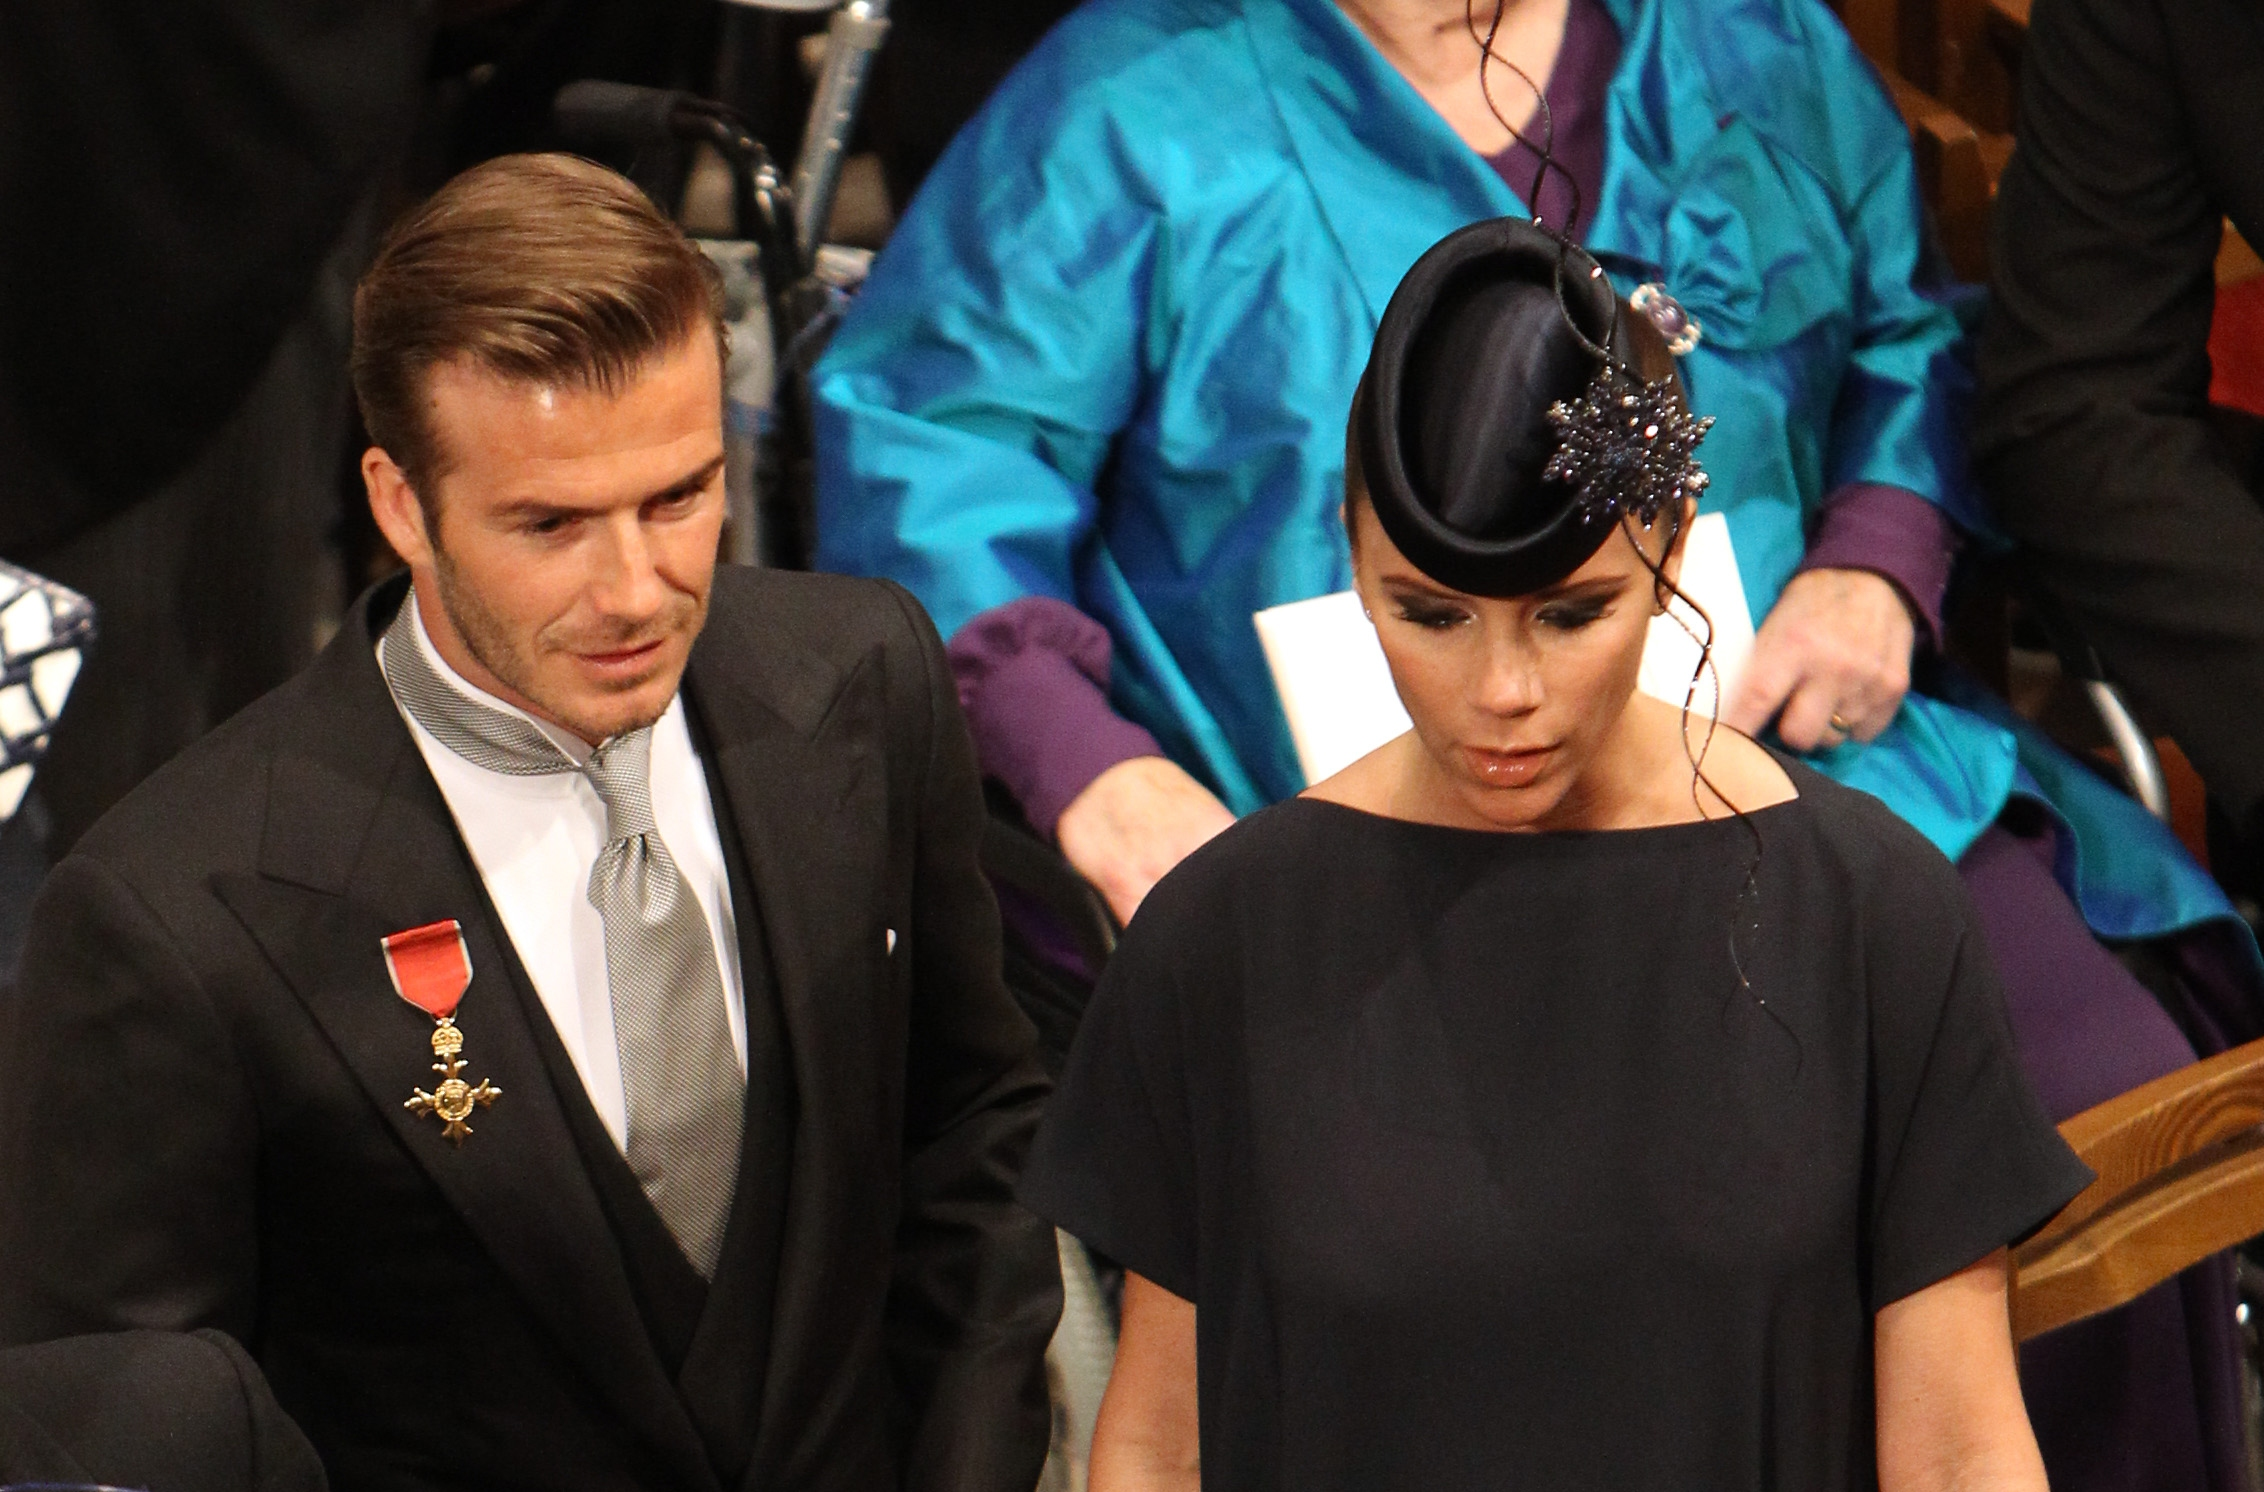 David and Victoria Beckham are seen in Westminster Abbey on April 29, 2011 in London, England.